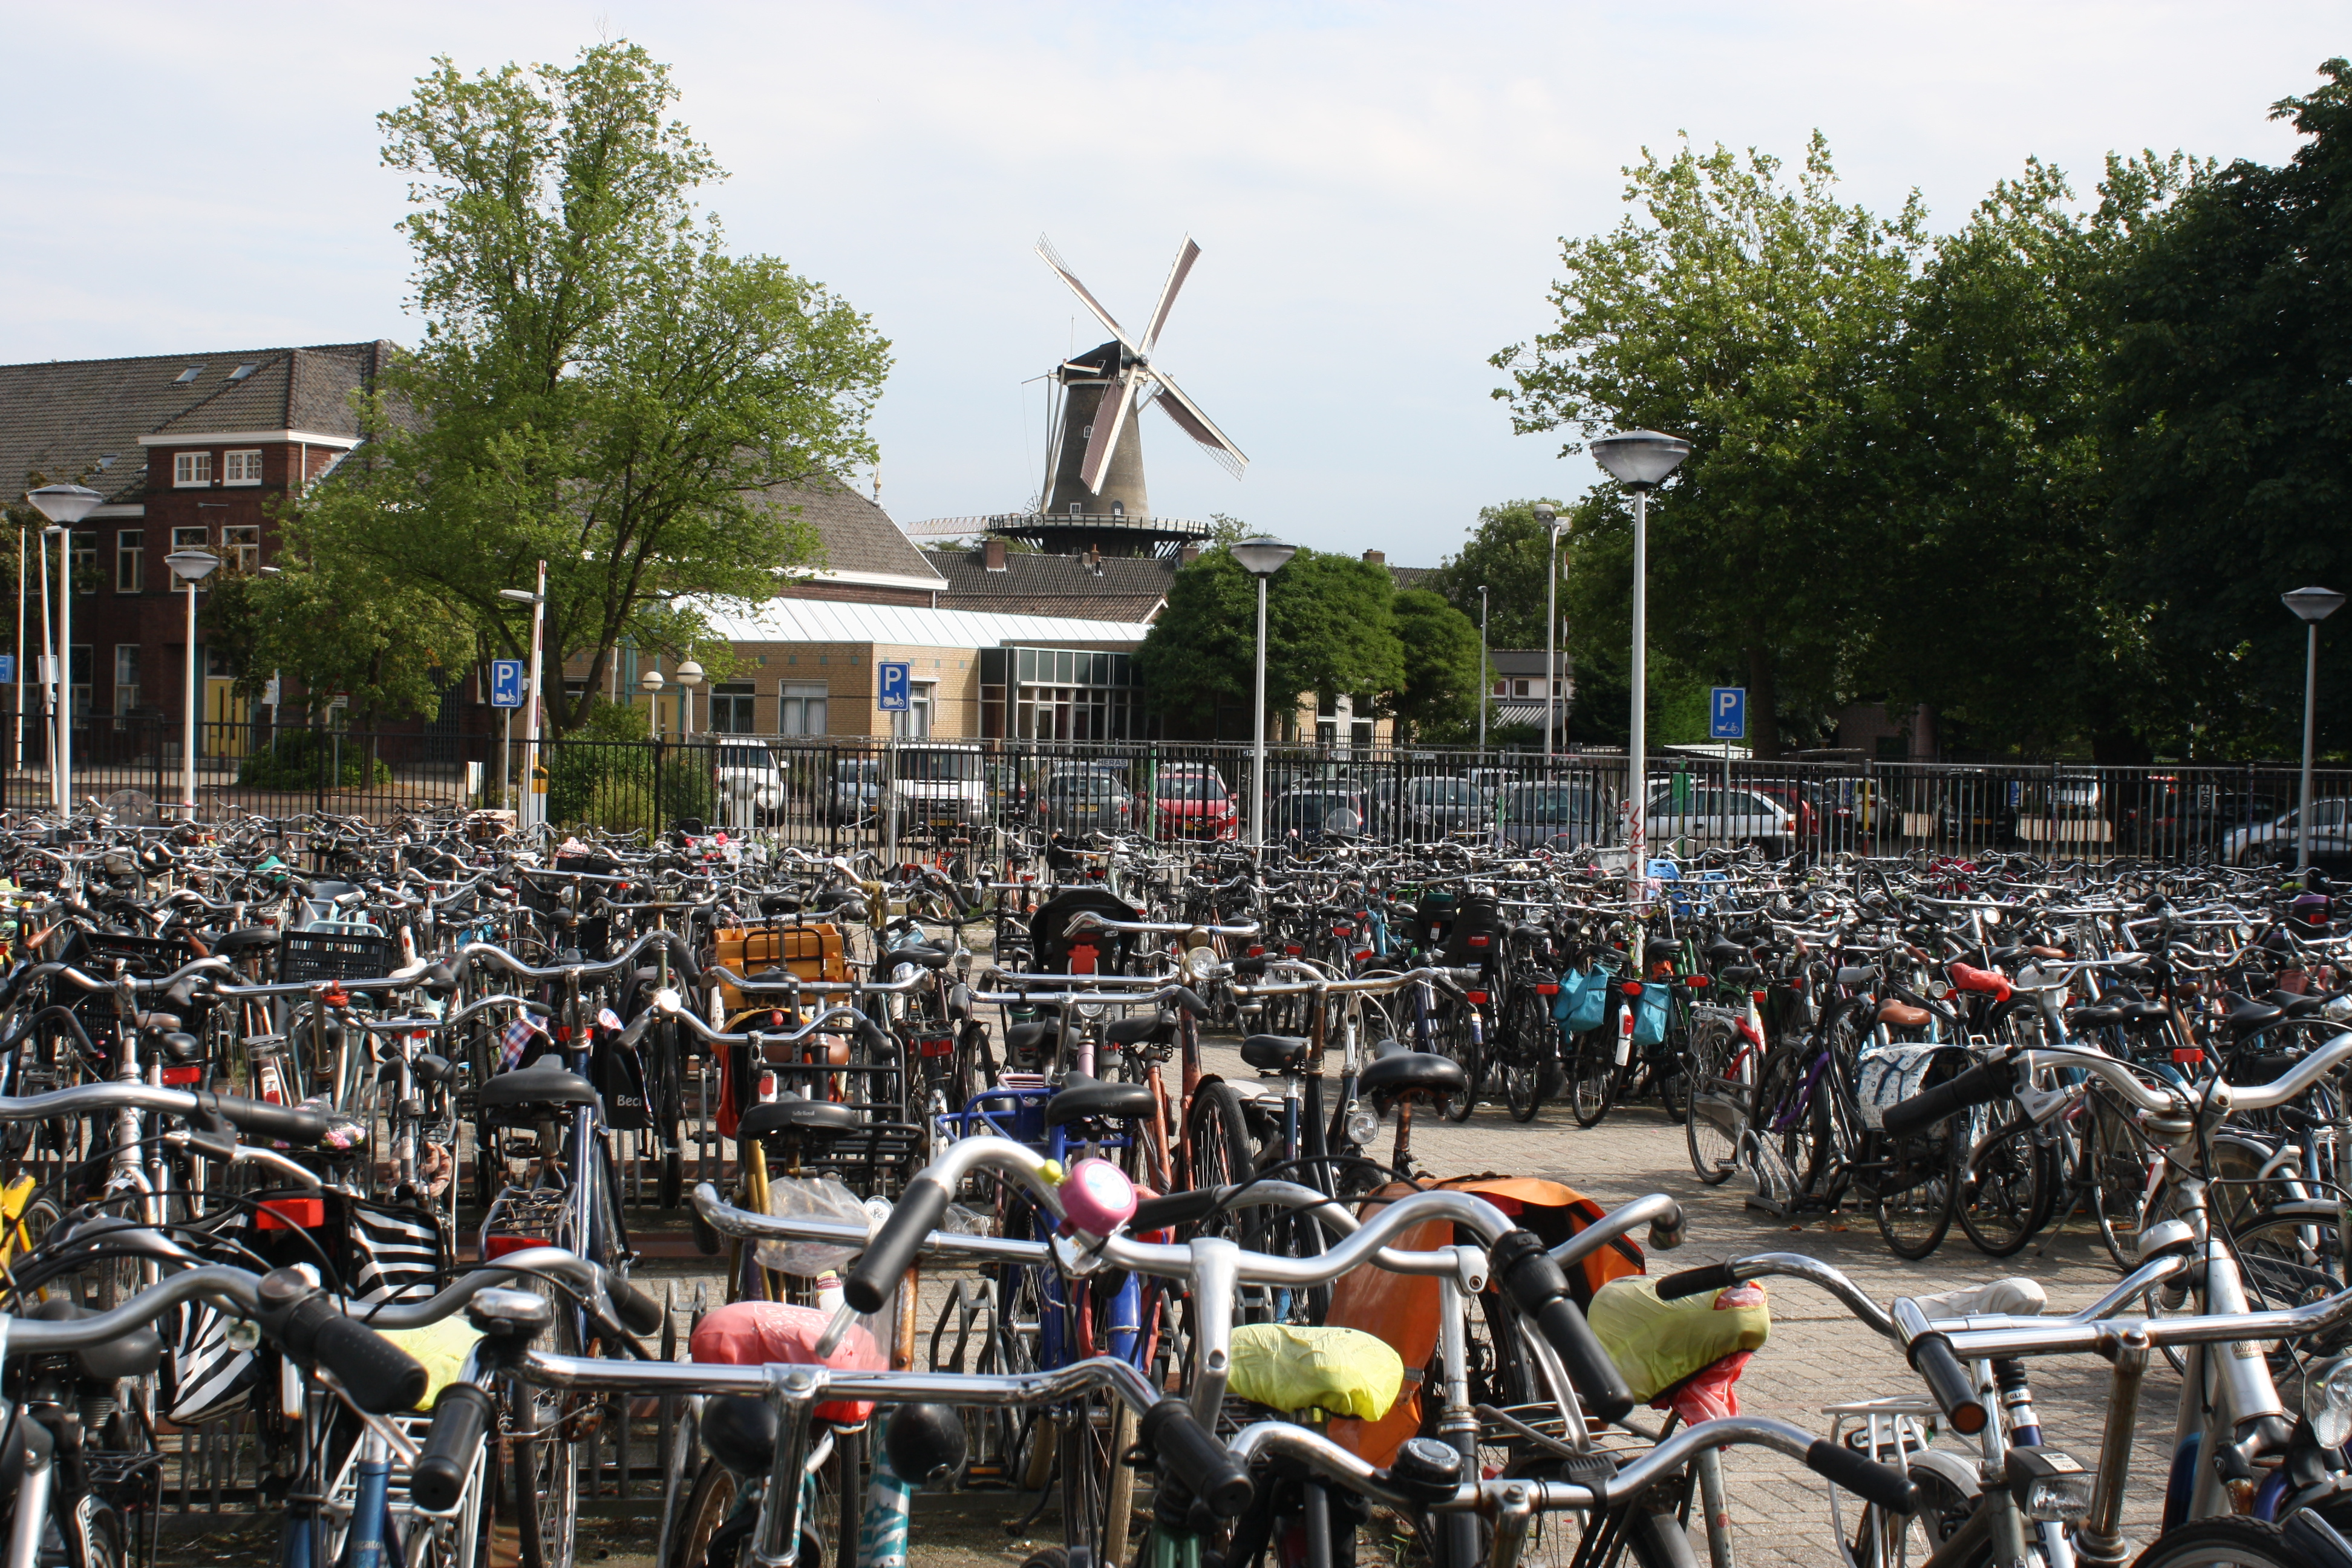 File:Molen De Valk (Leiden) with bikes.JPG - Wikimedia Commons